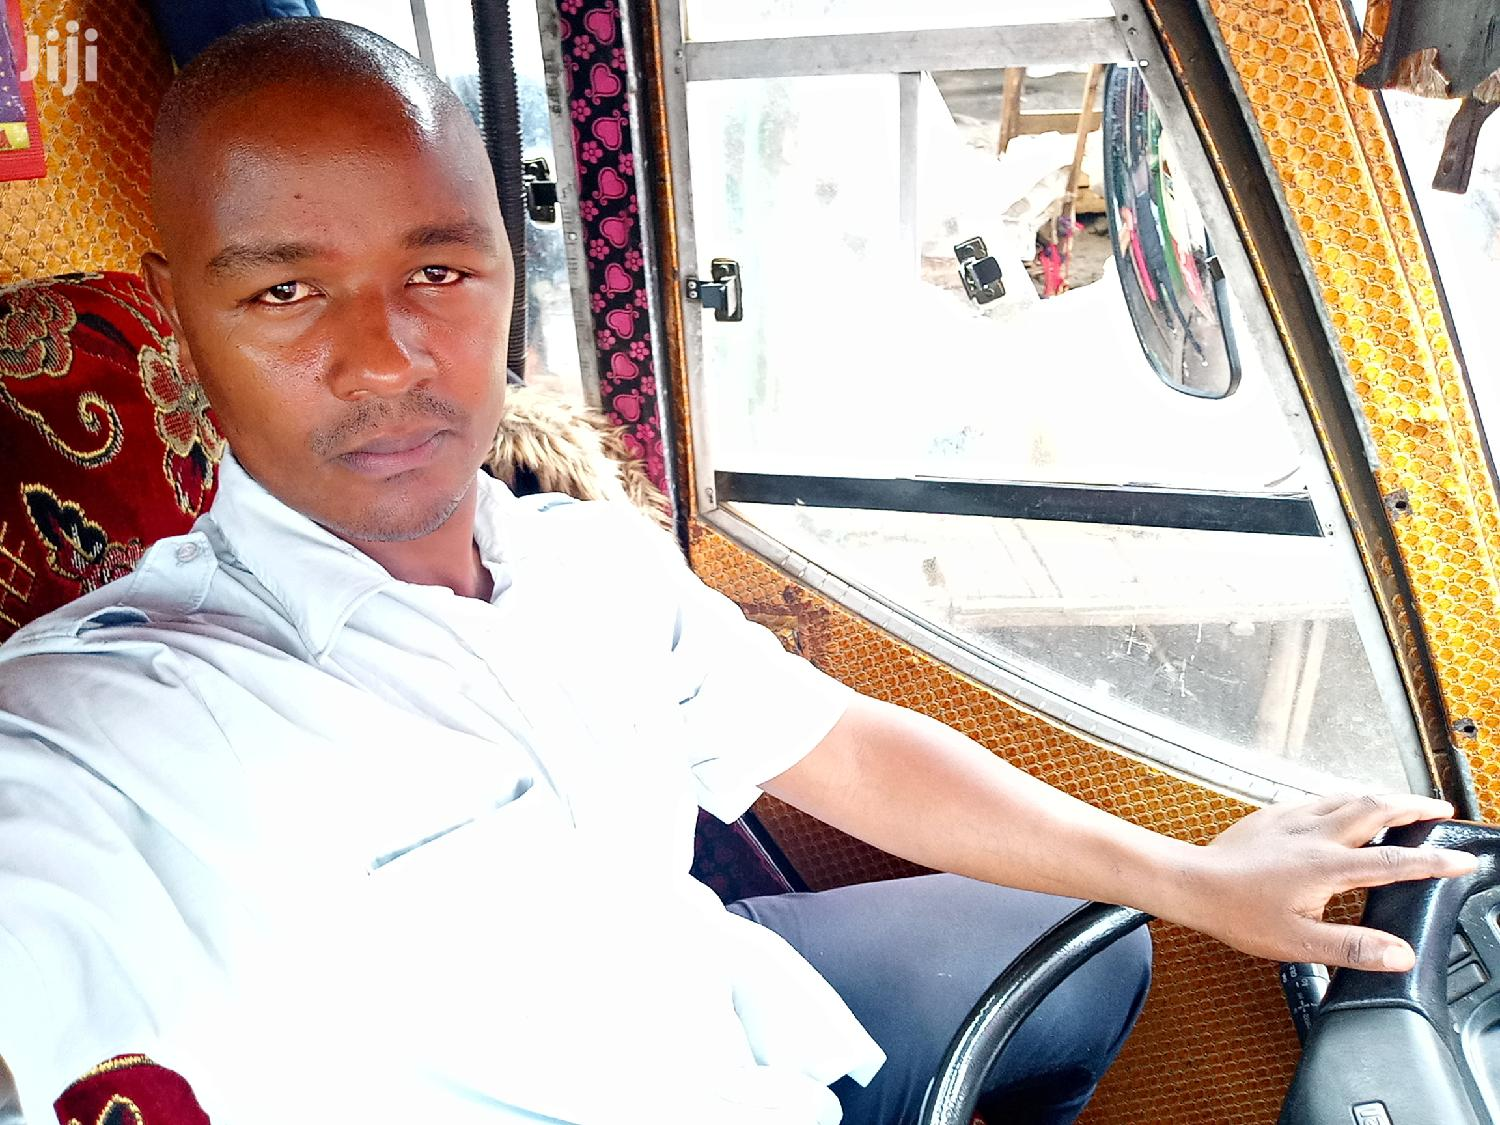 Am Looking For A Driver Job, Having Six Years Of Experience.Class BCE